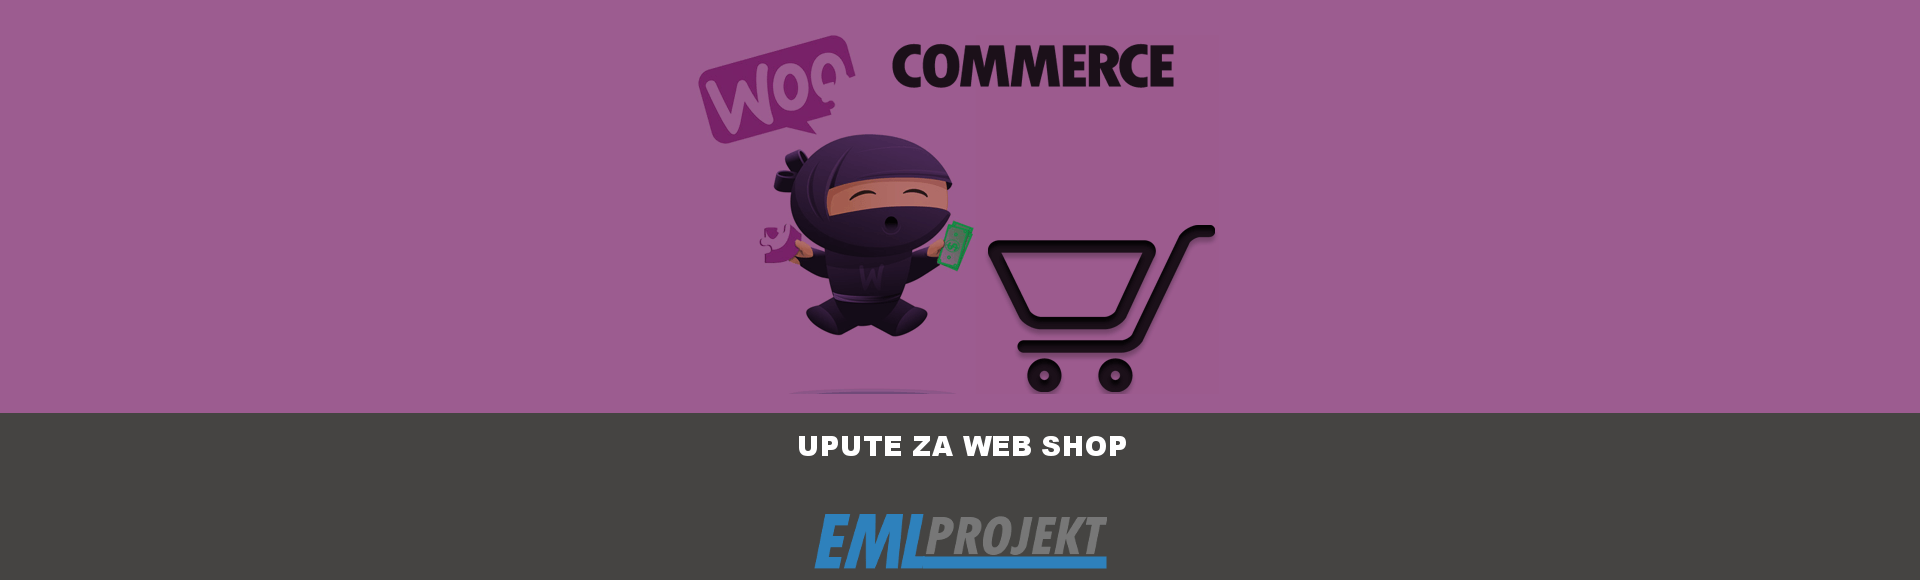 Virtualni, vanjski i proizvodi za download u web shopu